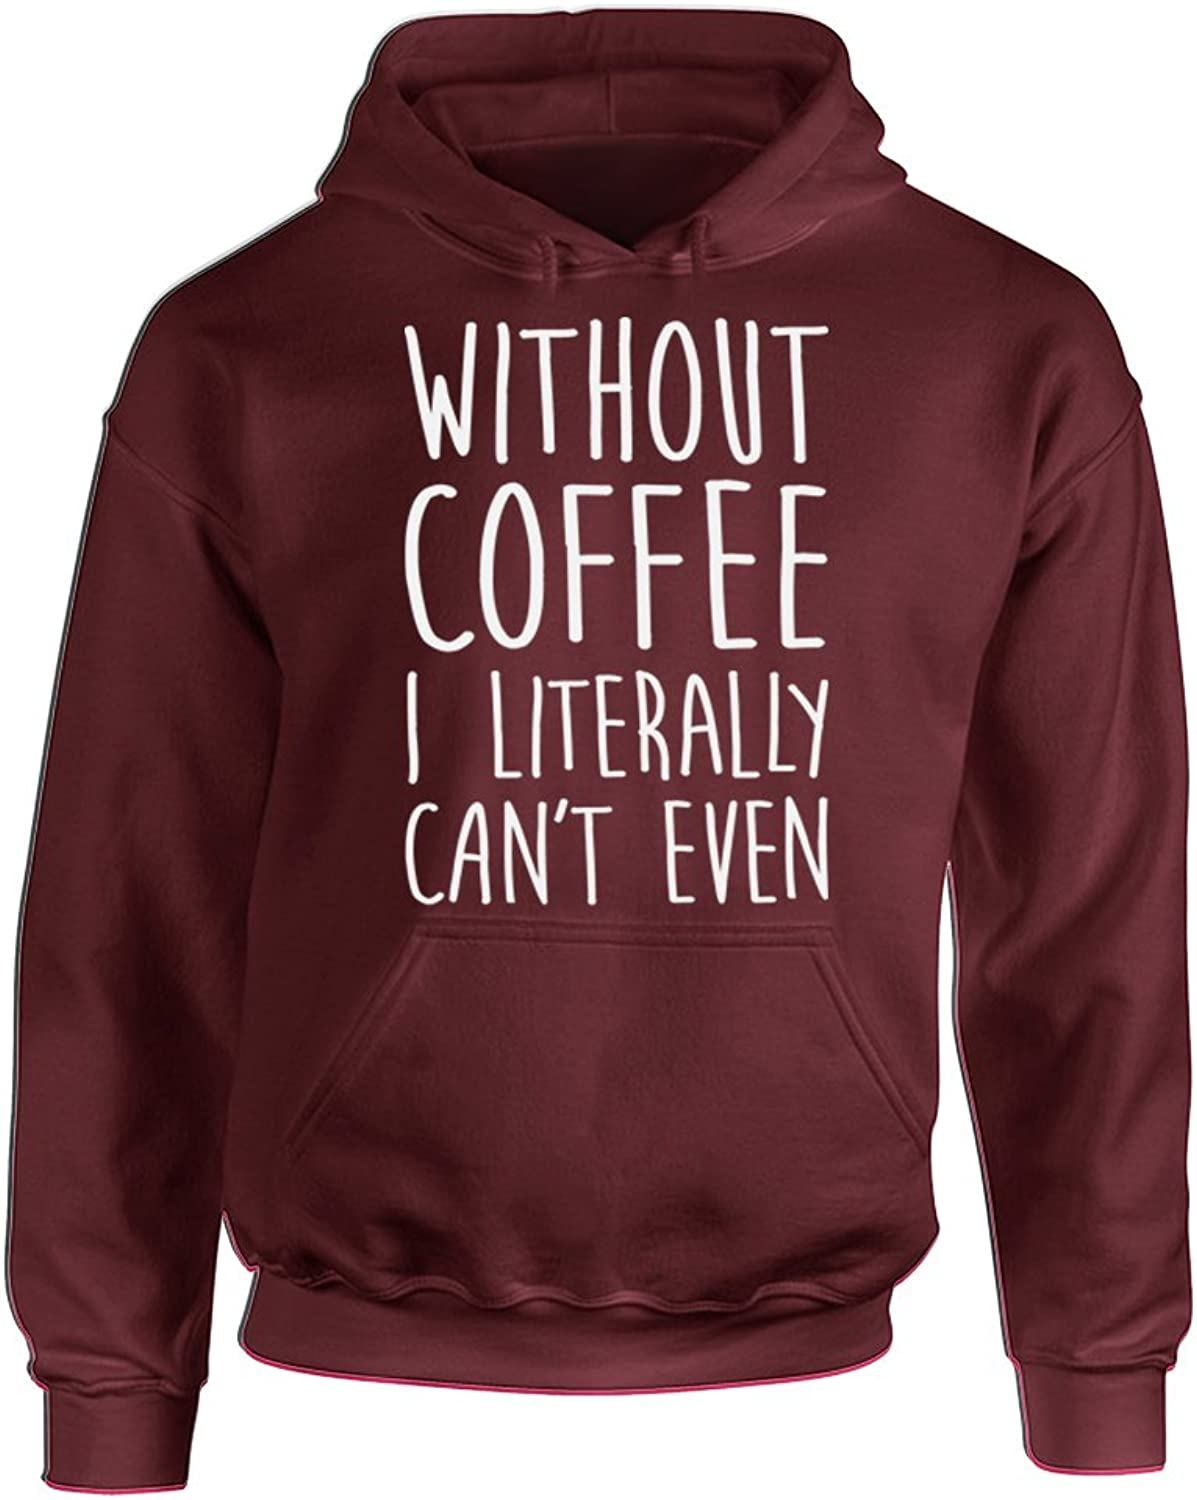 H/&T Shirt Hoodies For Women Men Without Coffee I Literally Cant Even Coffee Lovers Sweats